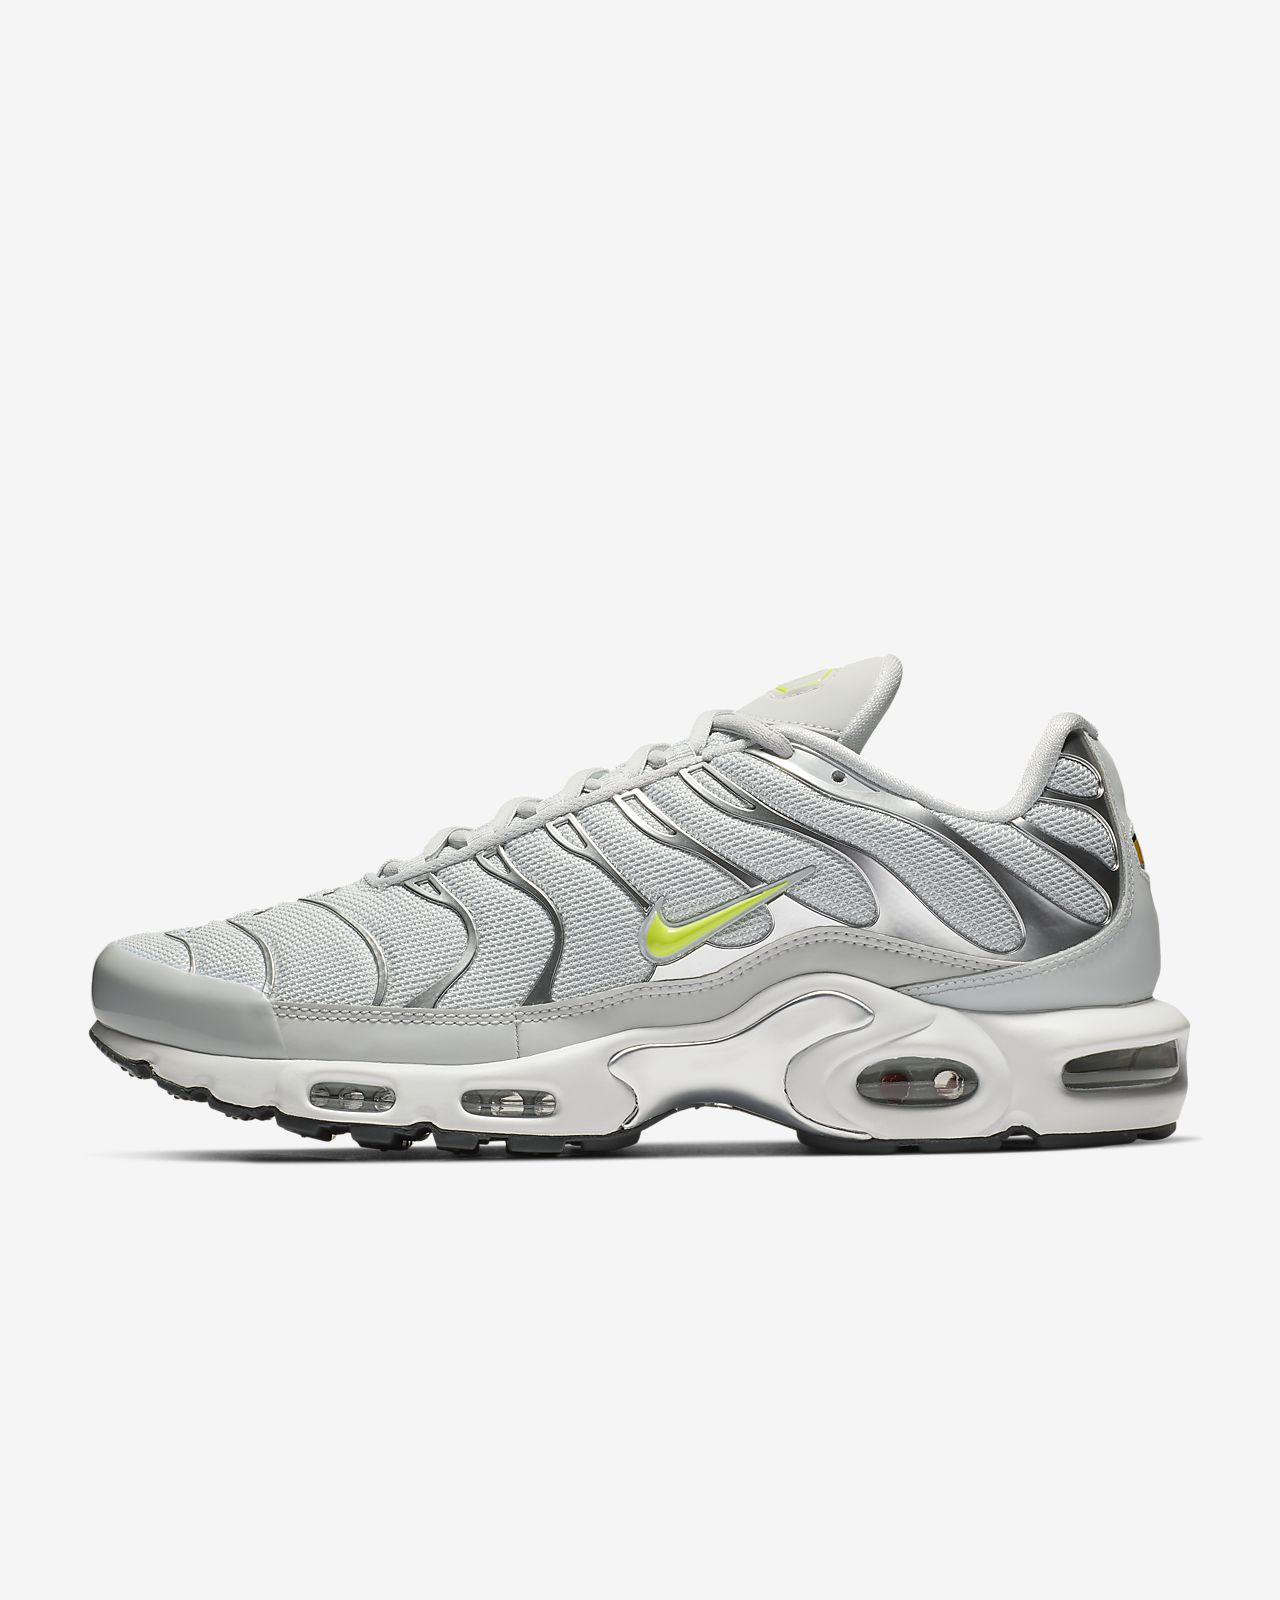 huge selection of 014c5 208e6 ... Chaussure Nike Air Max Plus TN SE pour Homme